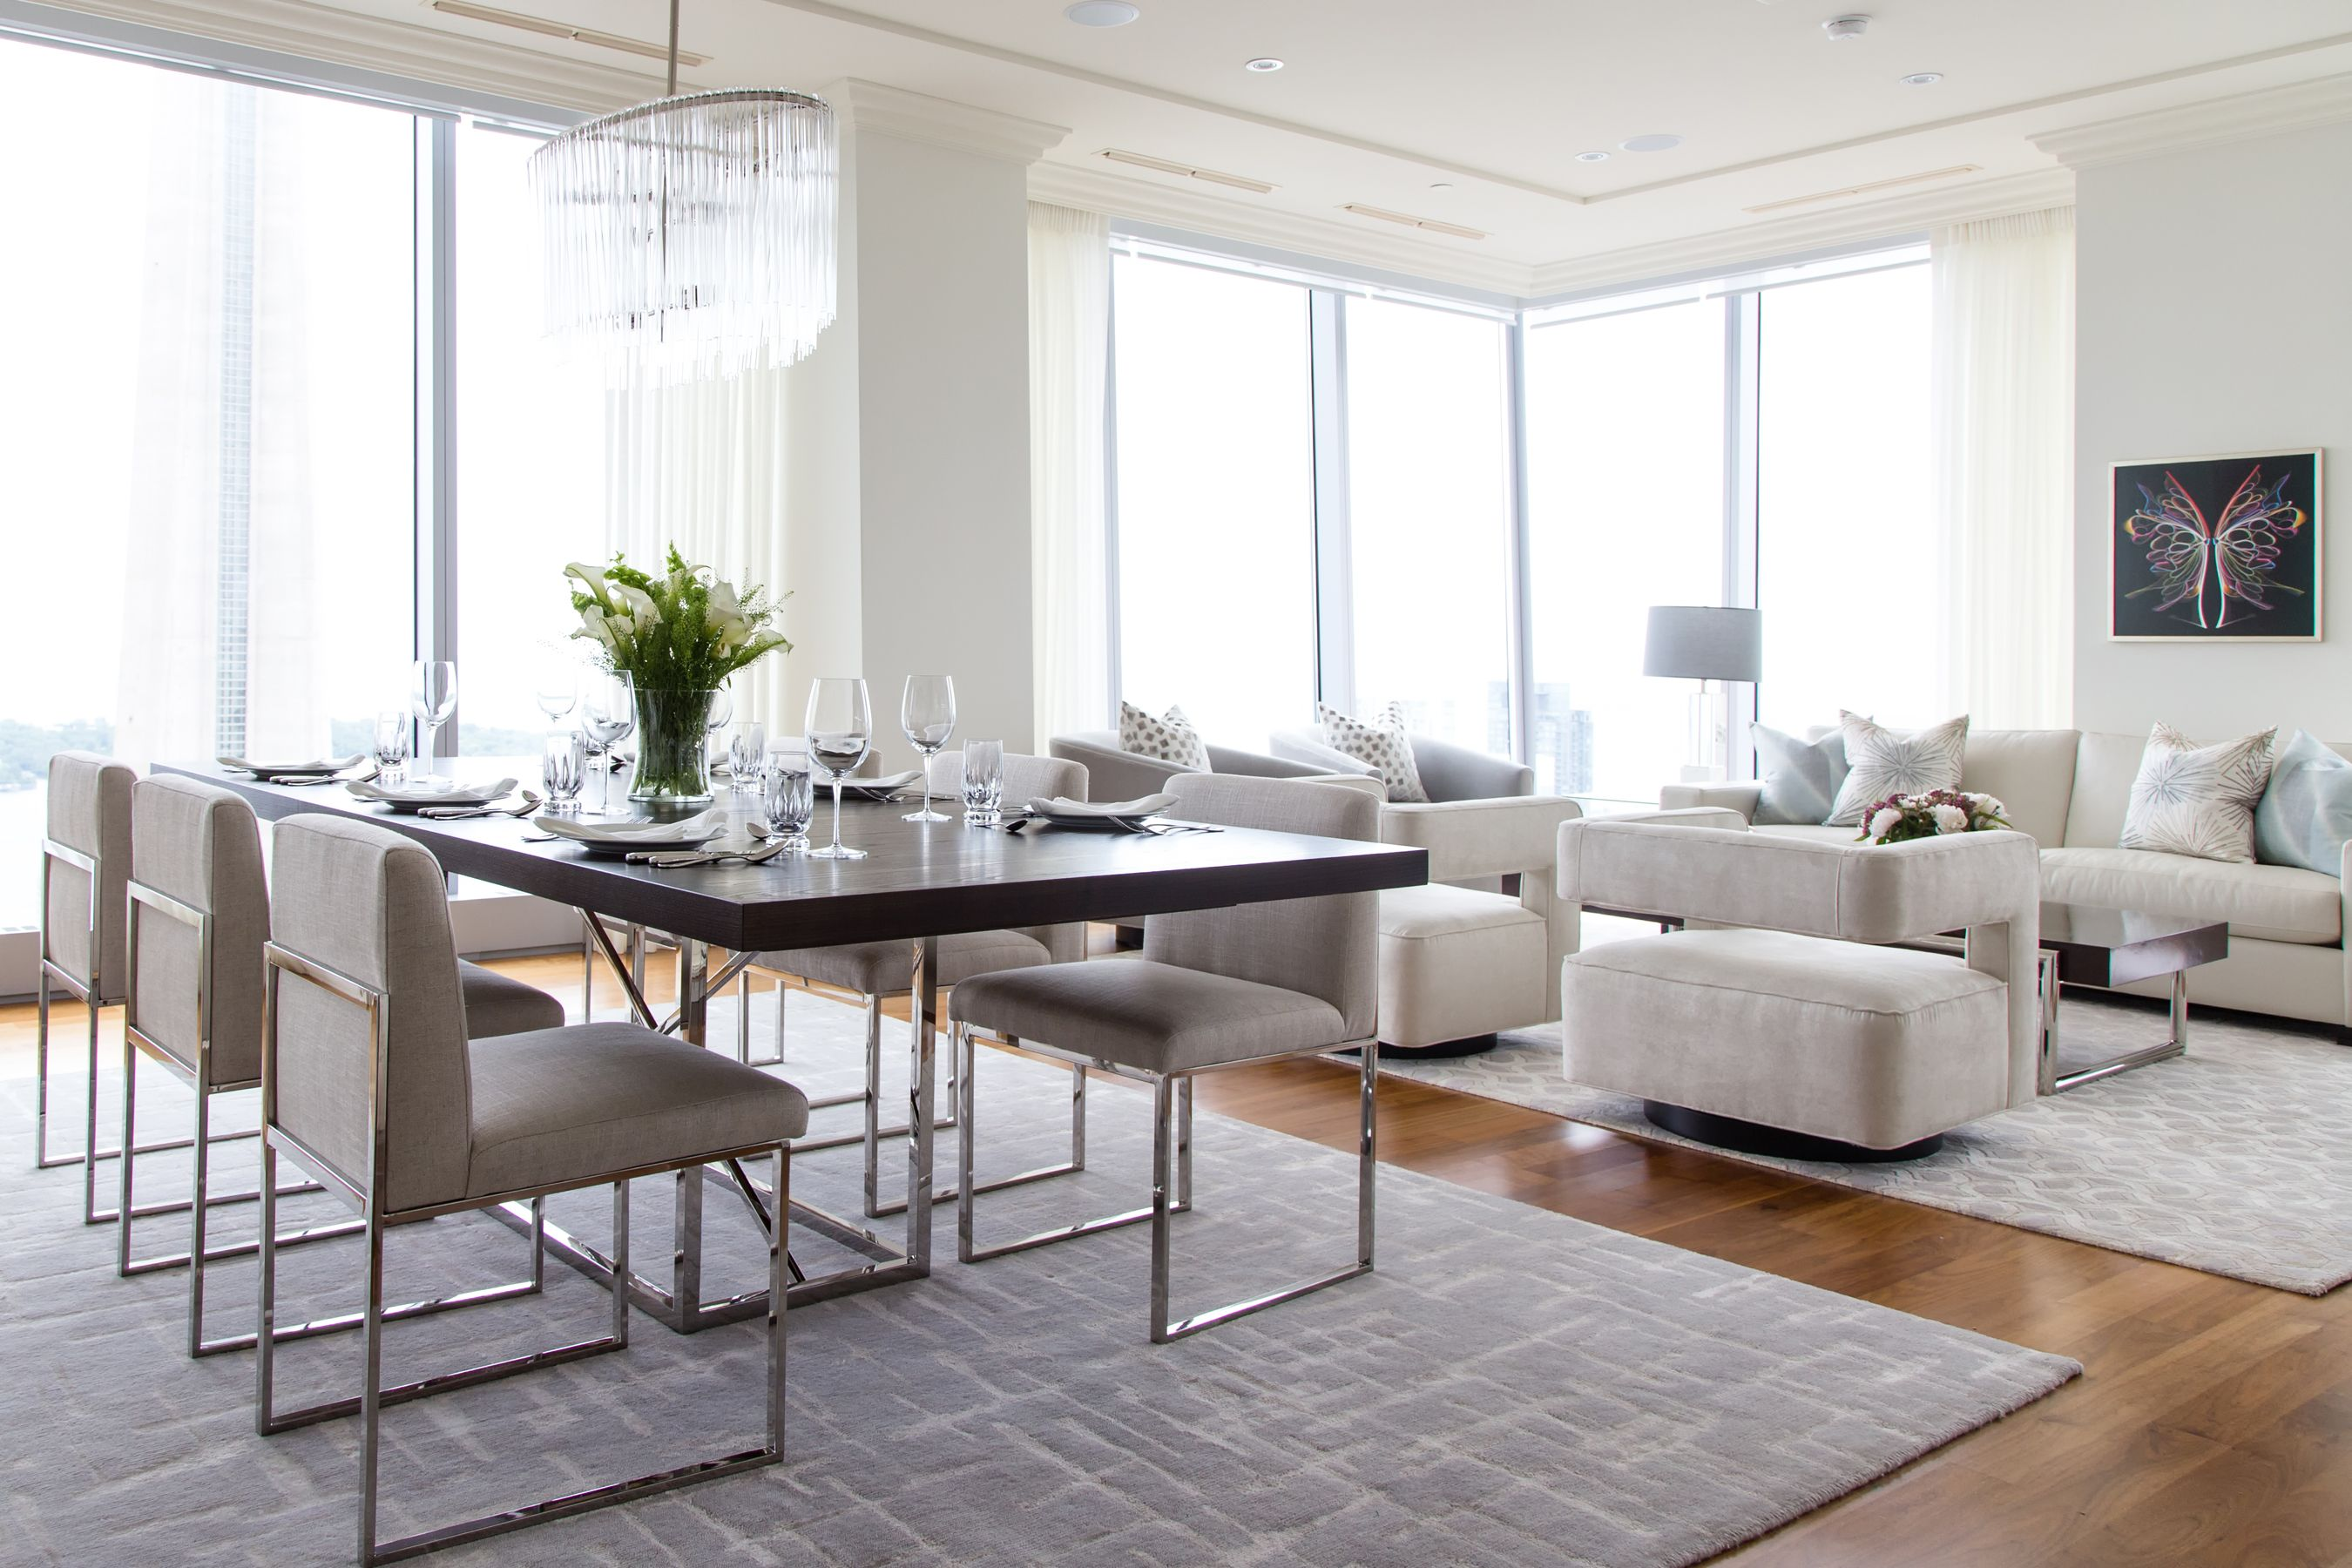 contemporary dining room living room combo up in the clouds. | megan ...